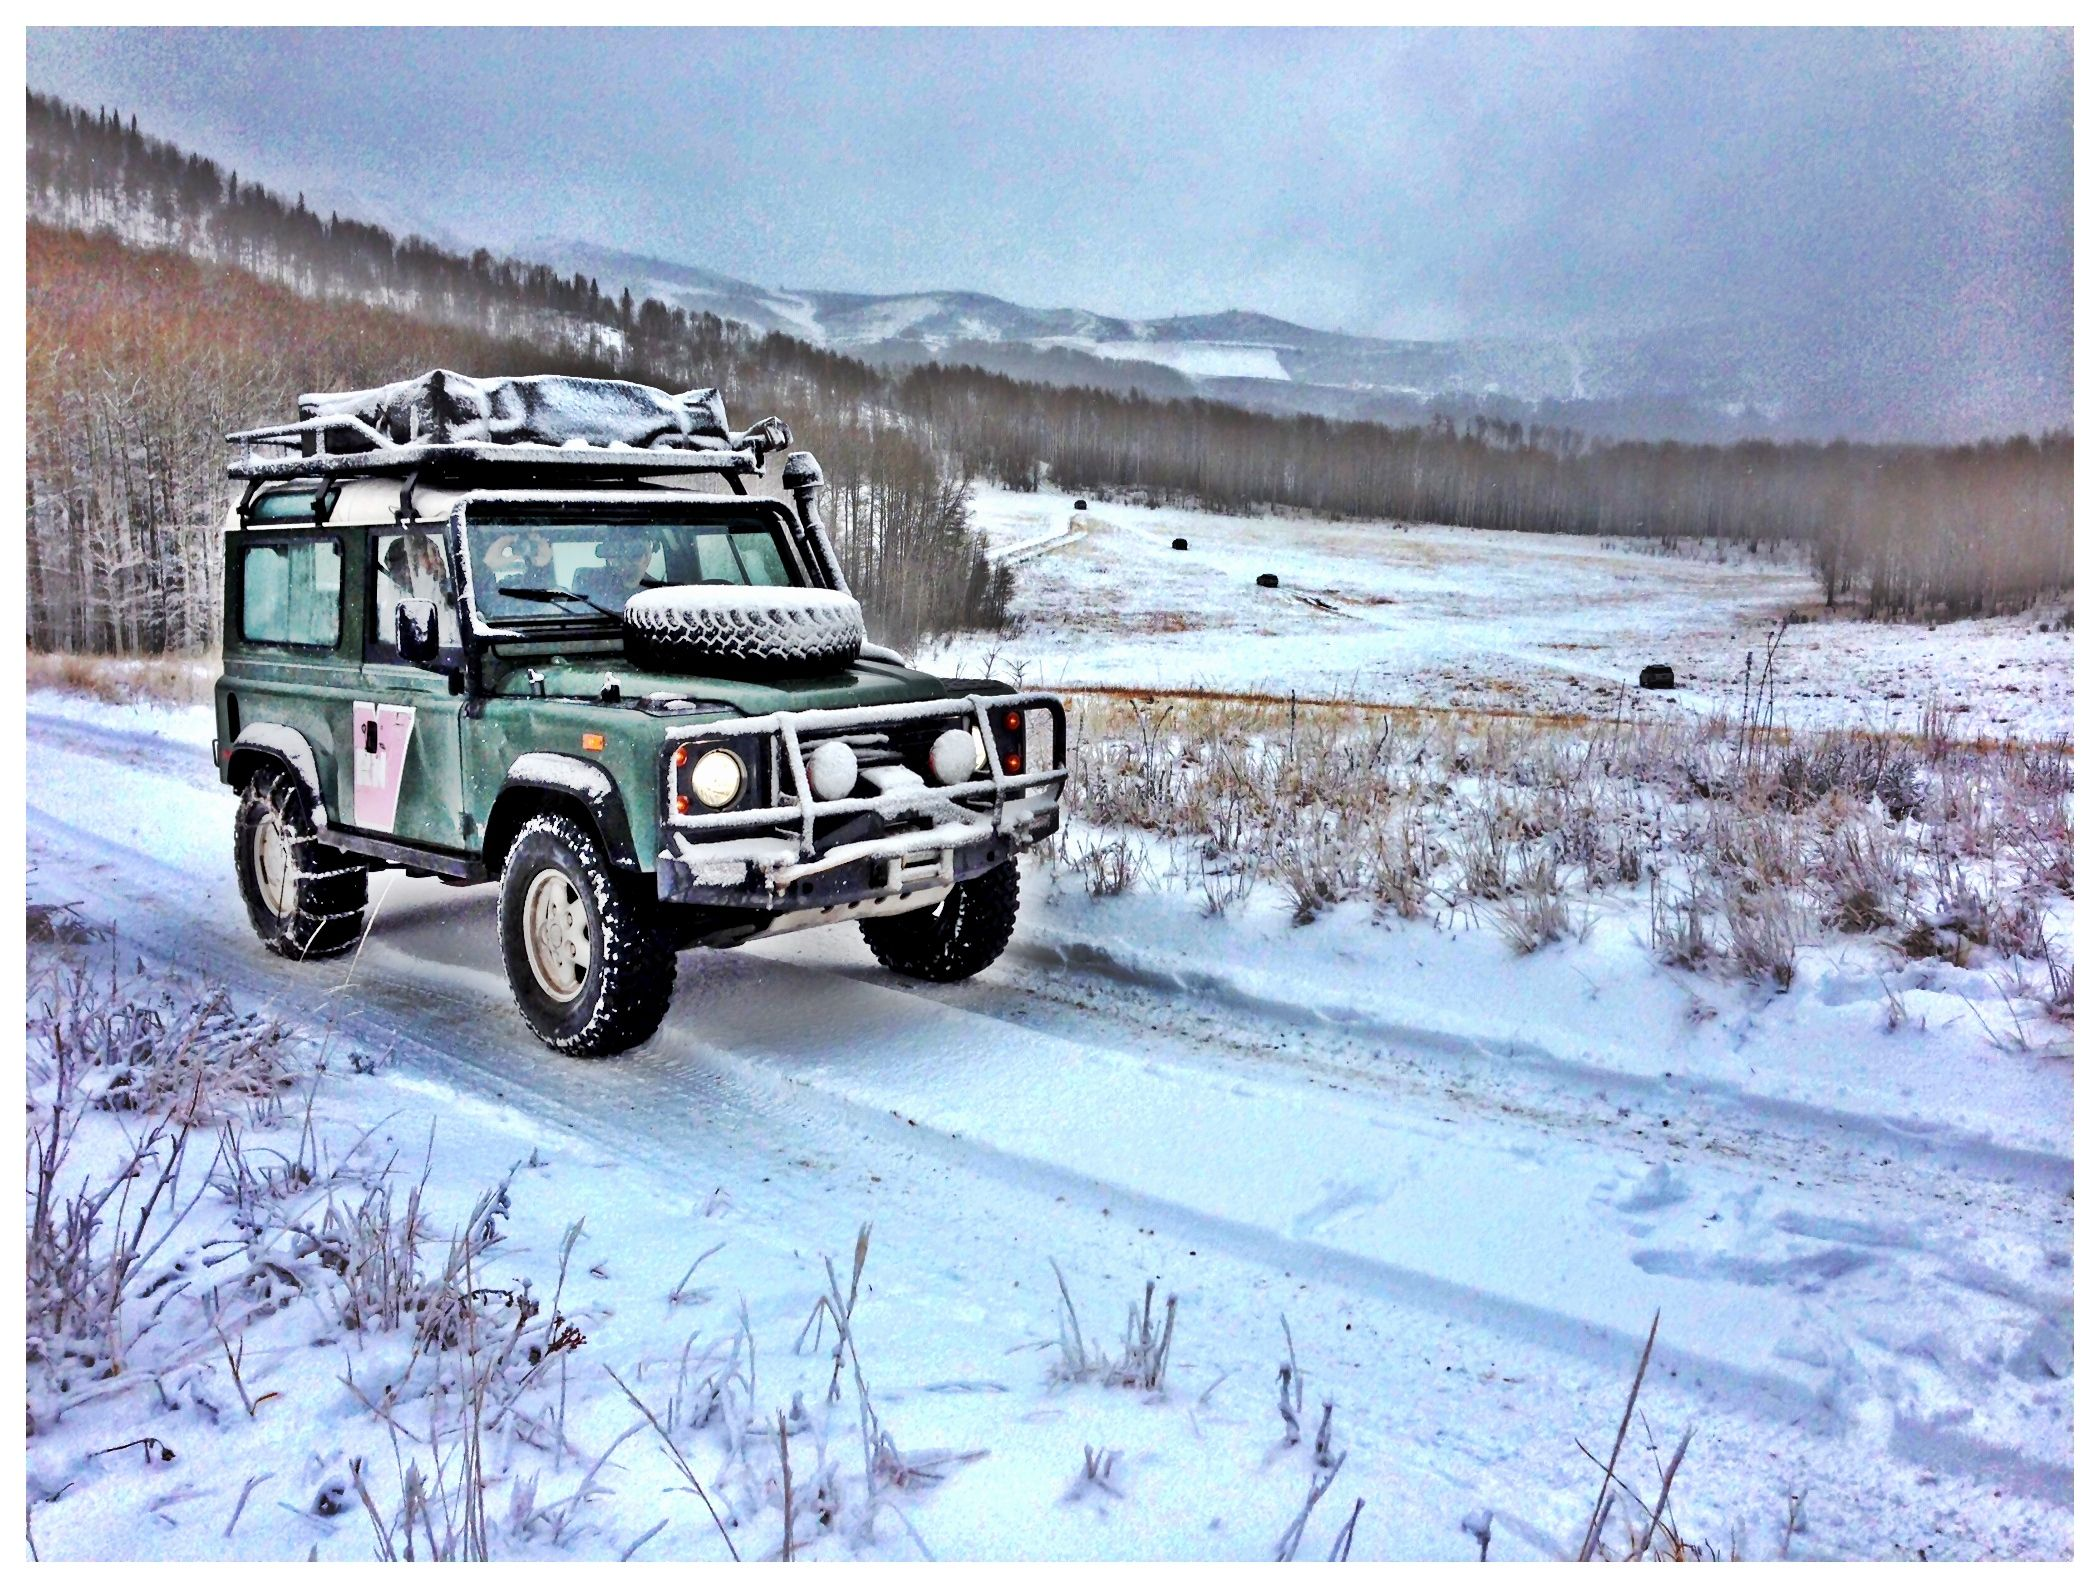 A 1995 Defender used as trail support in Utah